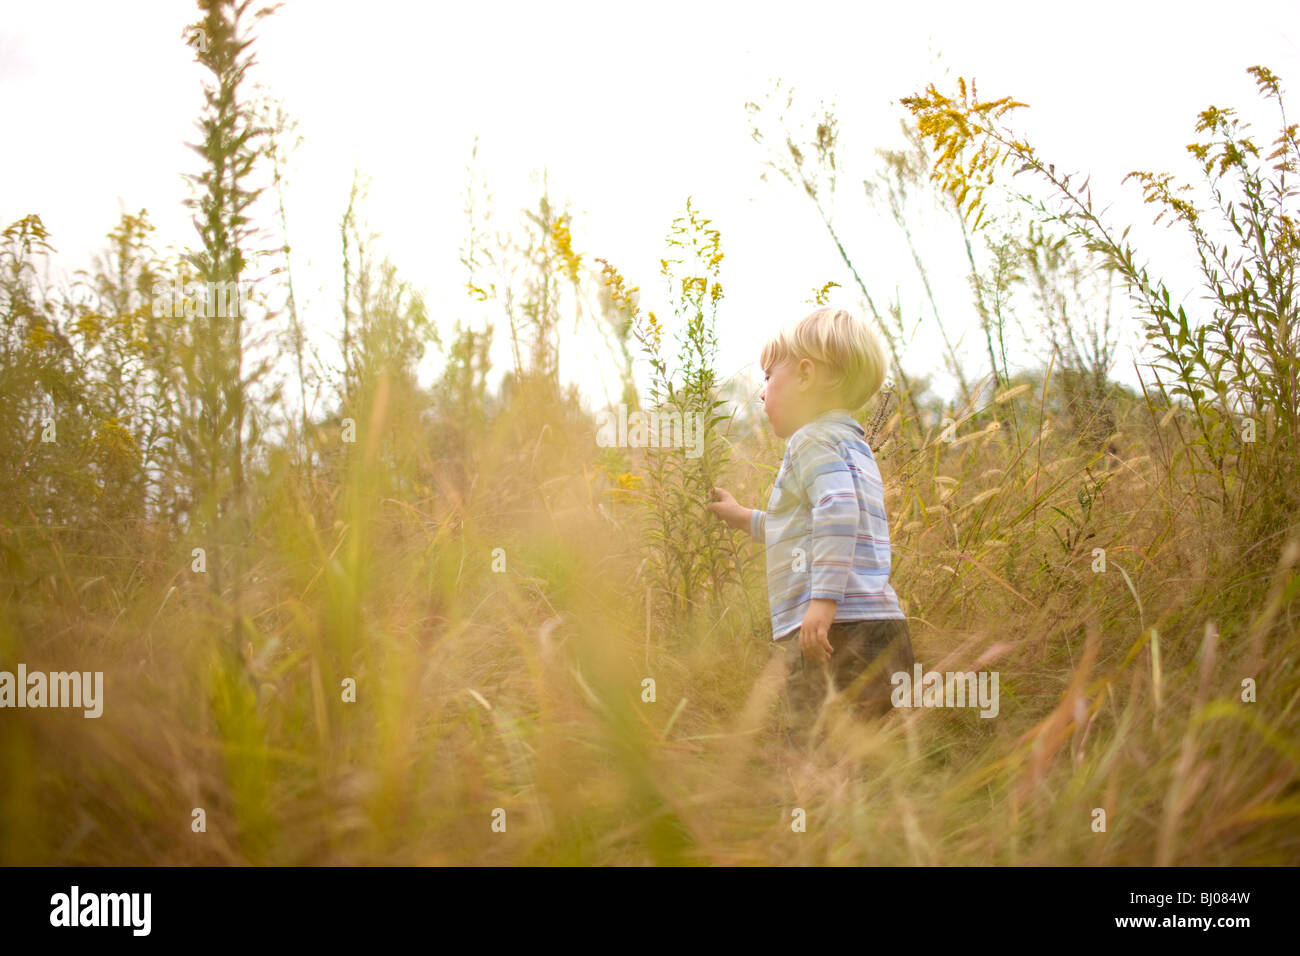 Young boy playing in a grassy field. - Stock Image